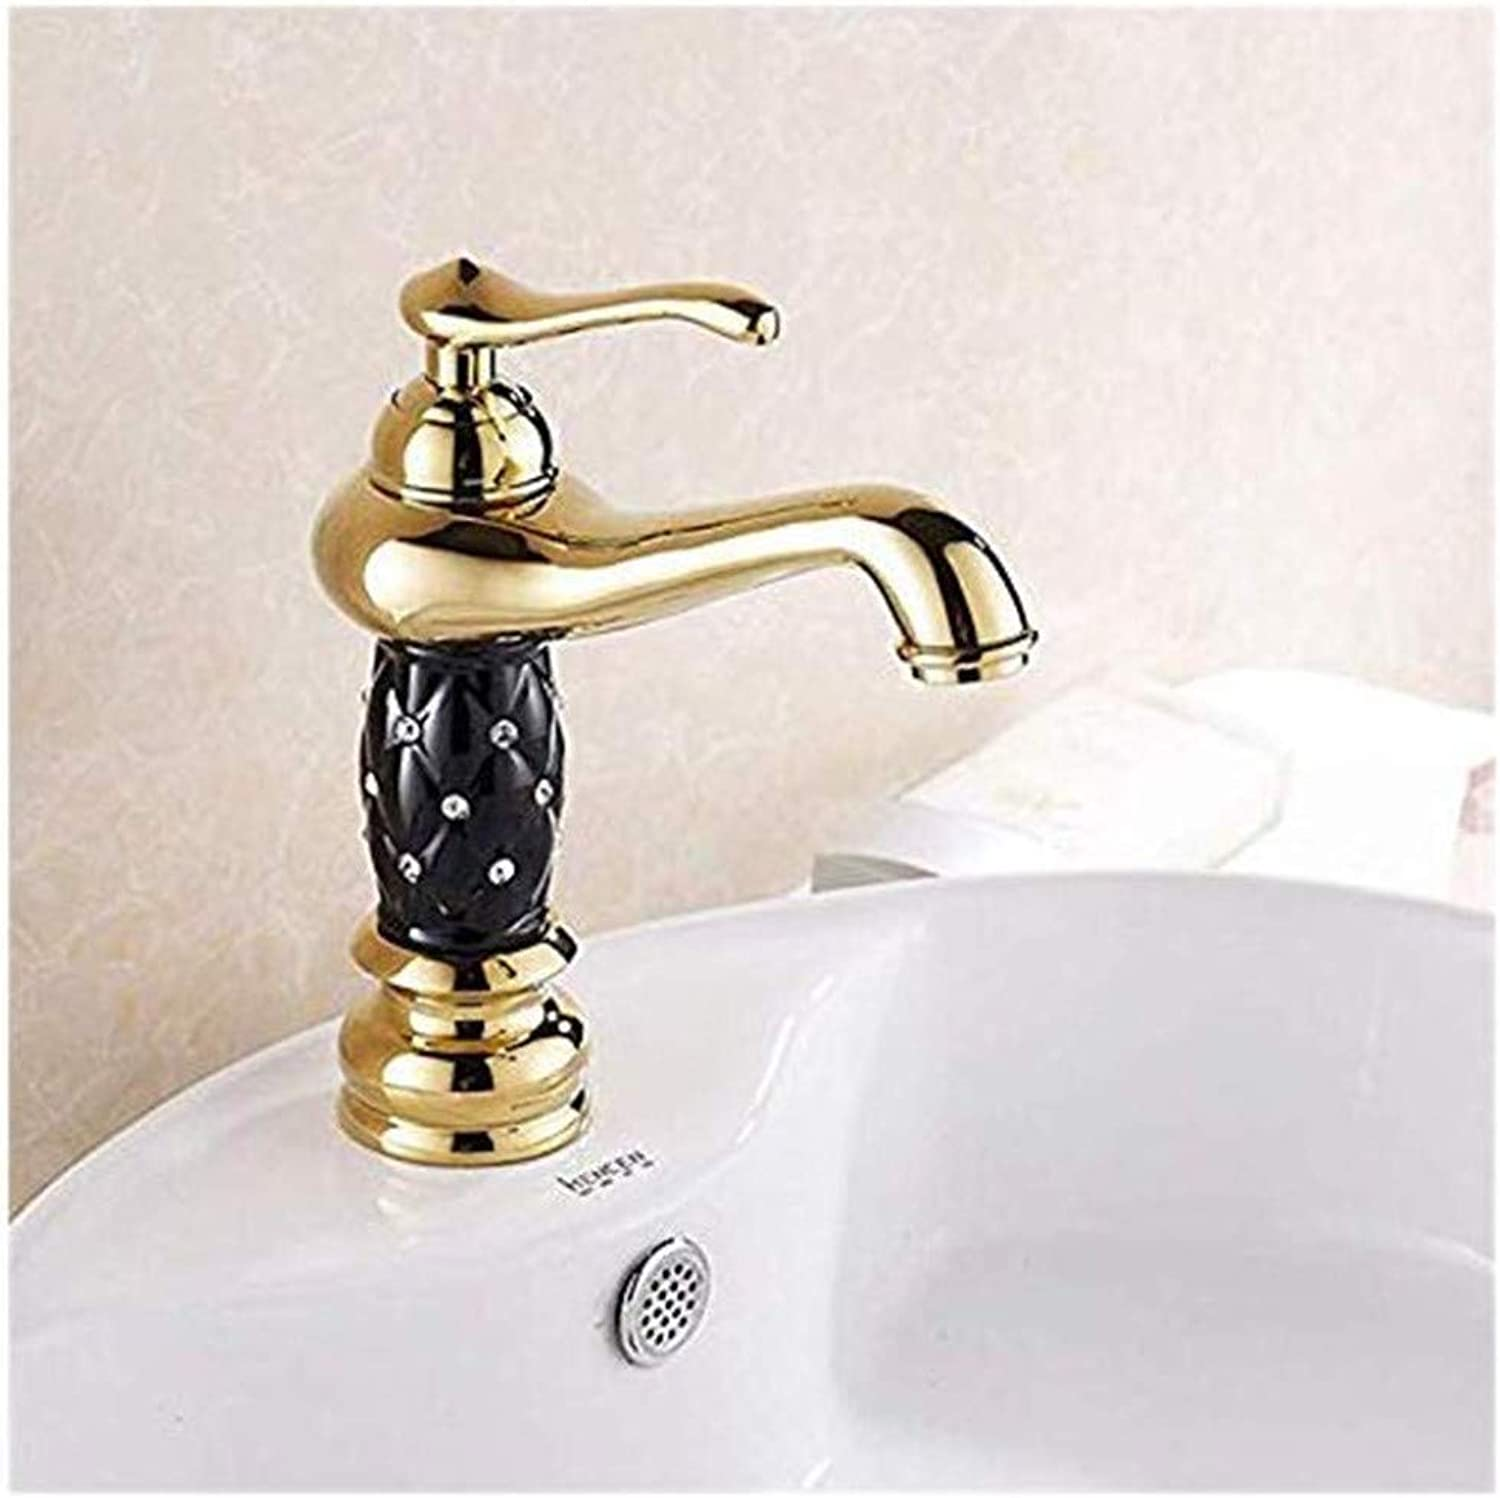 Faucetbasin Faucet Bathroom Sink Tap Basin Faucets gold color Deck Mounted Bathroom Mixer Faucets Black Finish with Diamond Bathroom Sink Faucet Single Handle Washbasin Hot Cold Mixer Water Tap